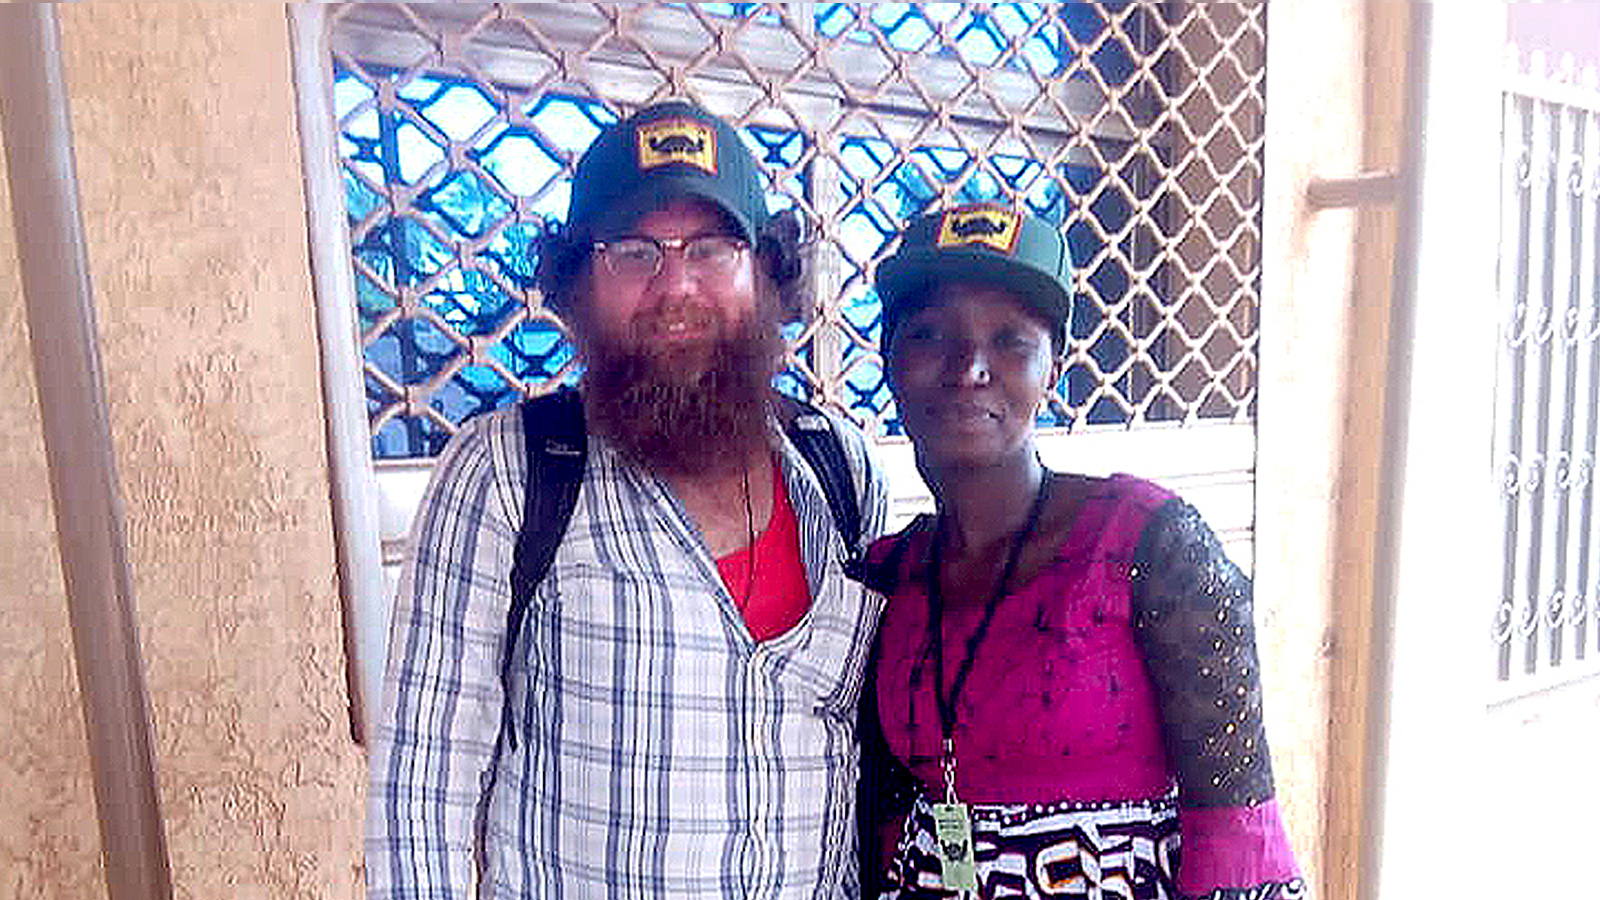 Kevin Fridy and one of his research team members in Burkina Faso